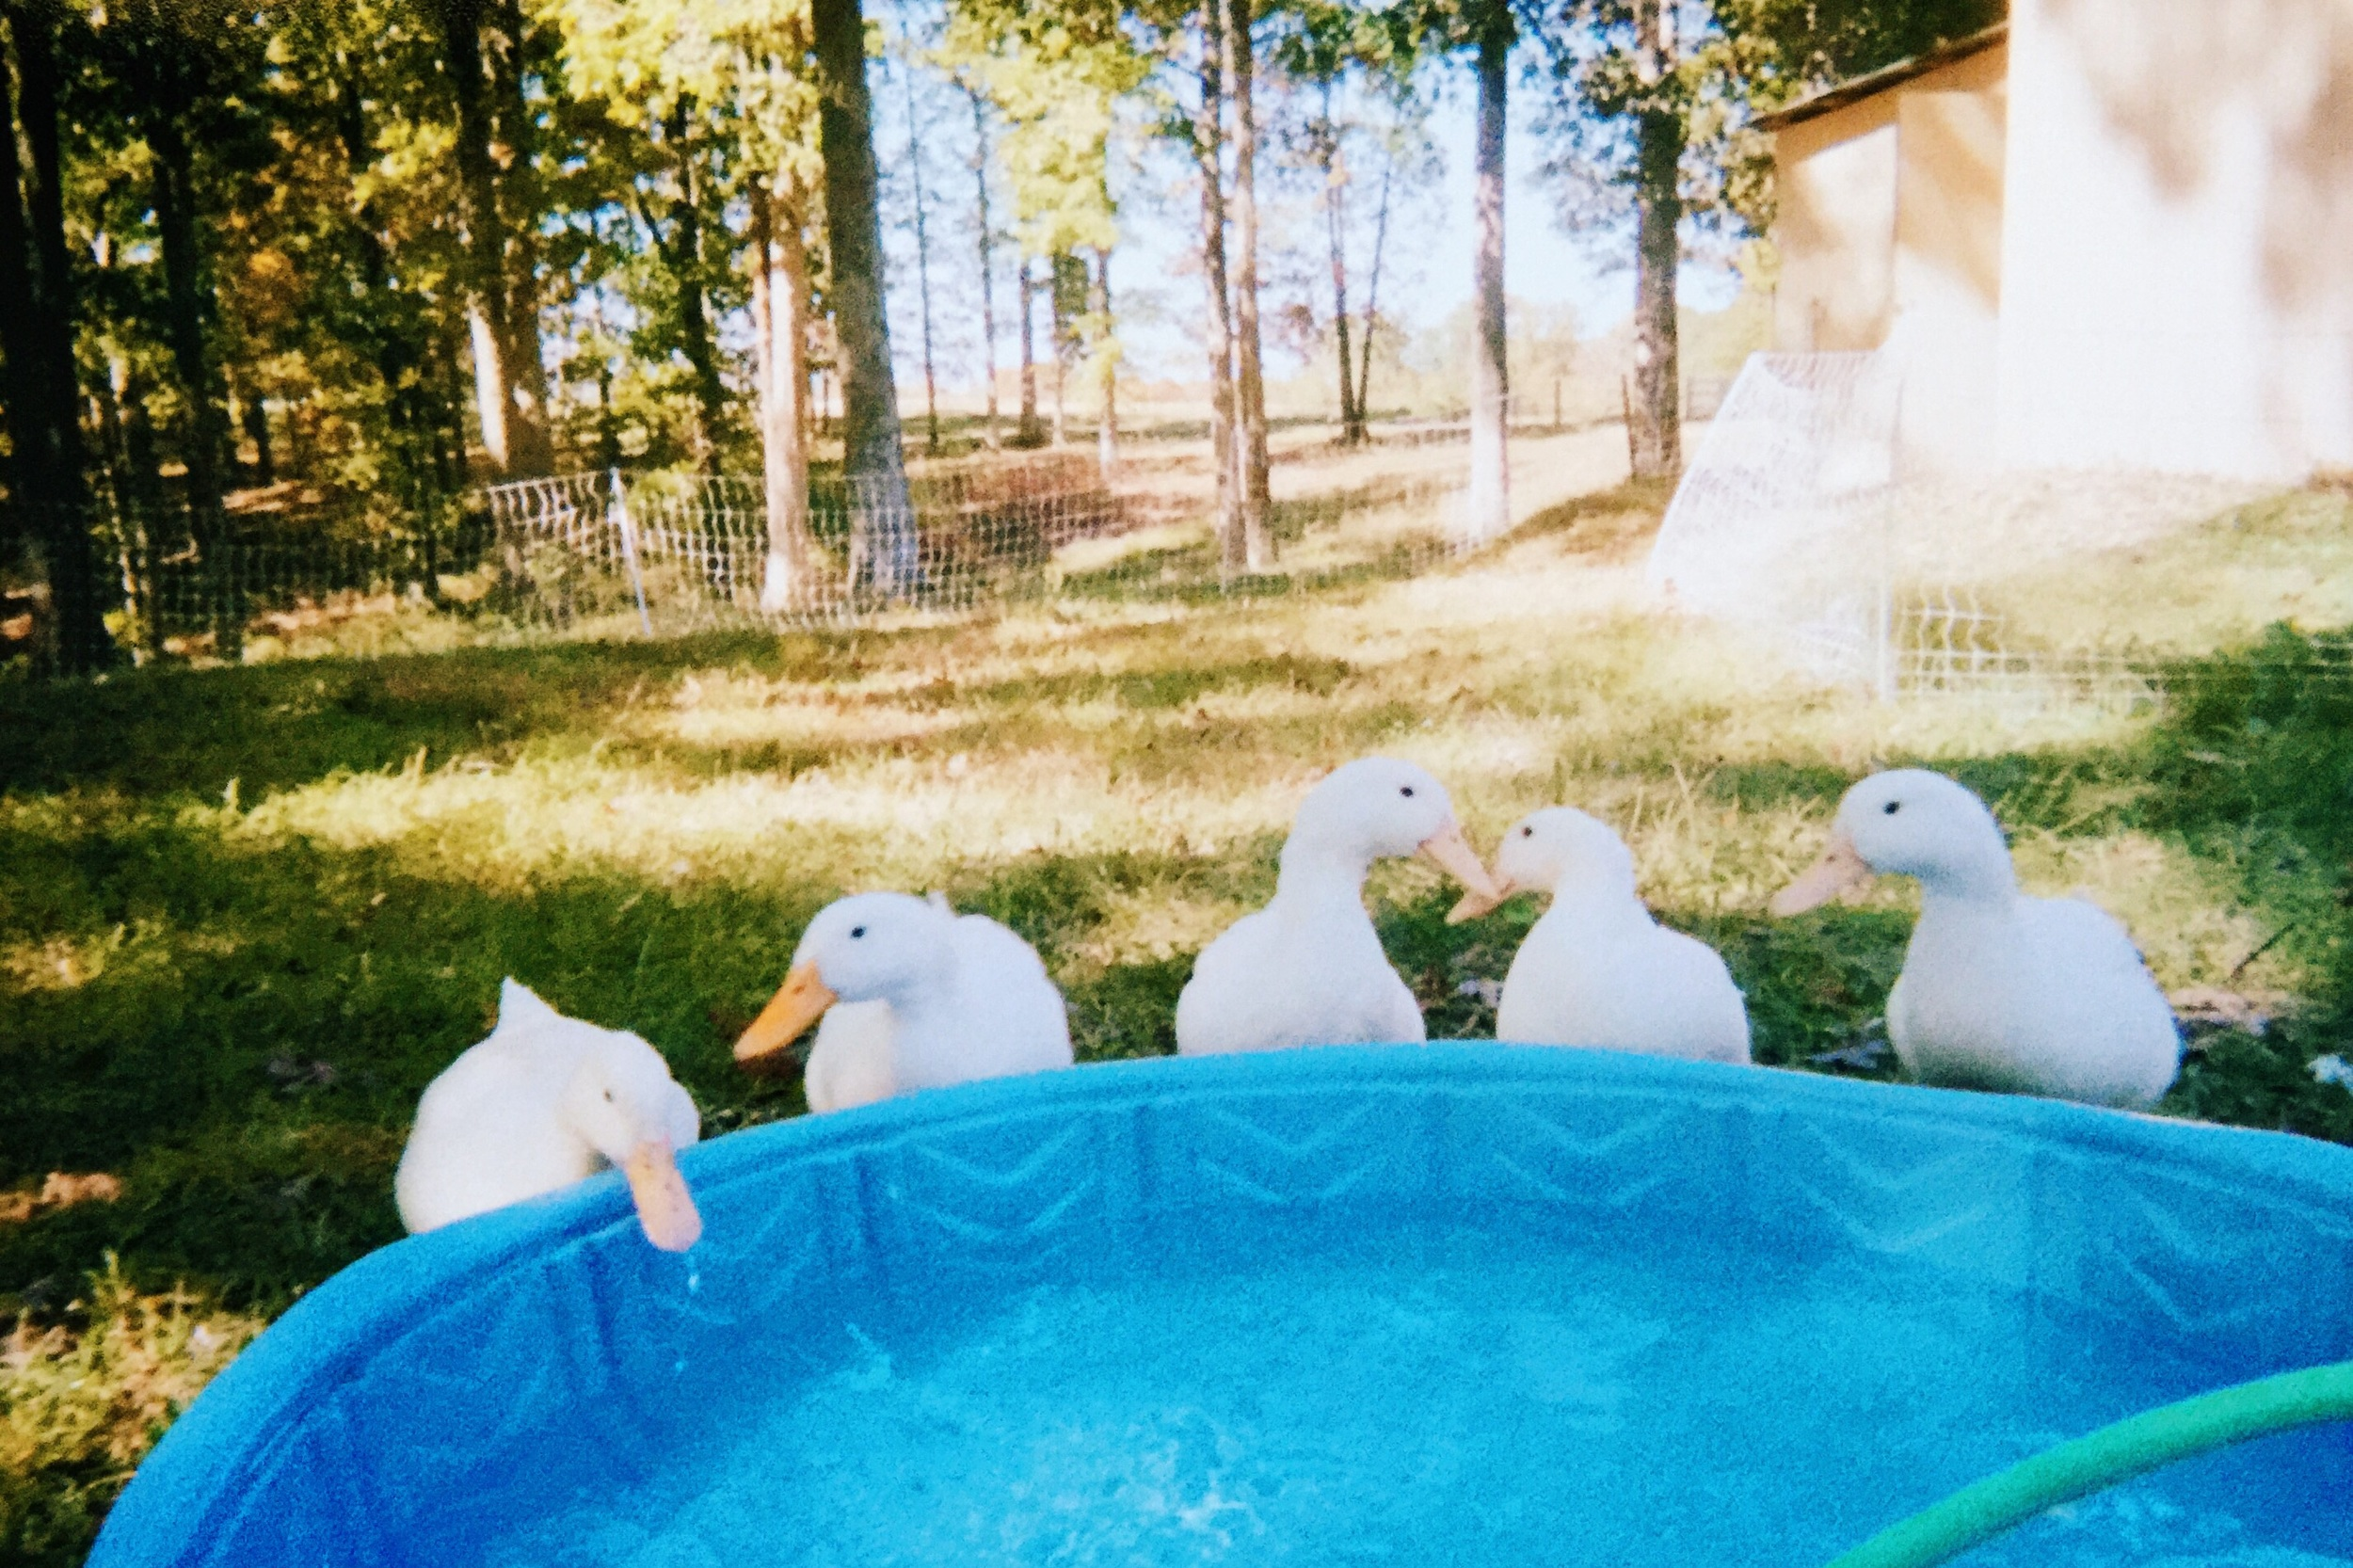 The ducks!! When I saw this photo, I fell in love all over again. This is how I remember them with their little kiddie pool.